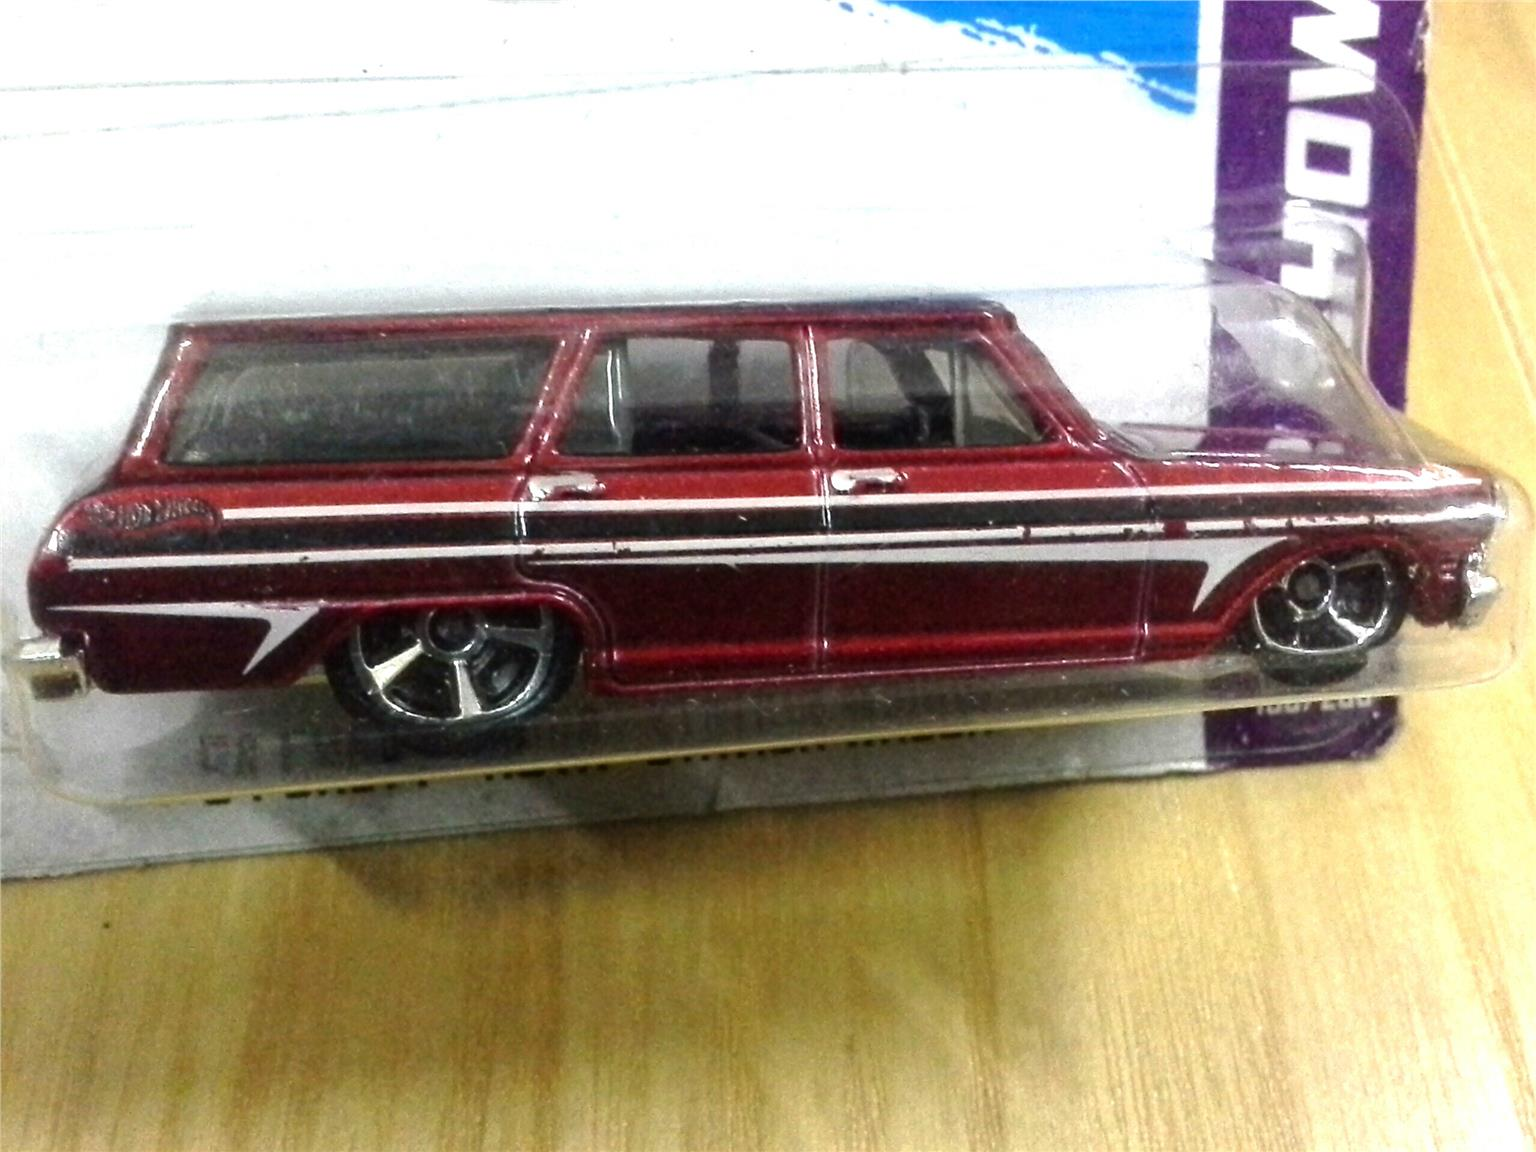 All Chevy 64 chevy nova : OLD CARDED 2013 Hot Wheels 64 CHEVY N (end 3/4/2018 1:15 AM)